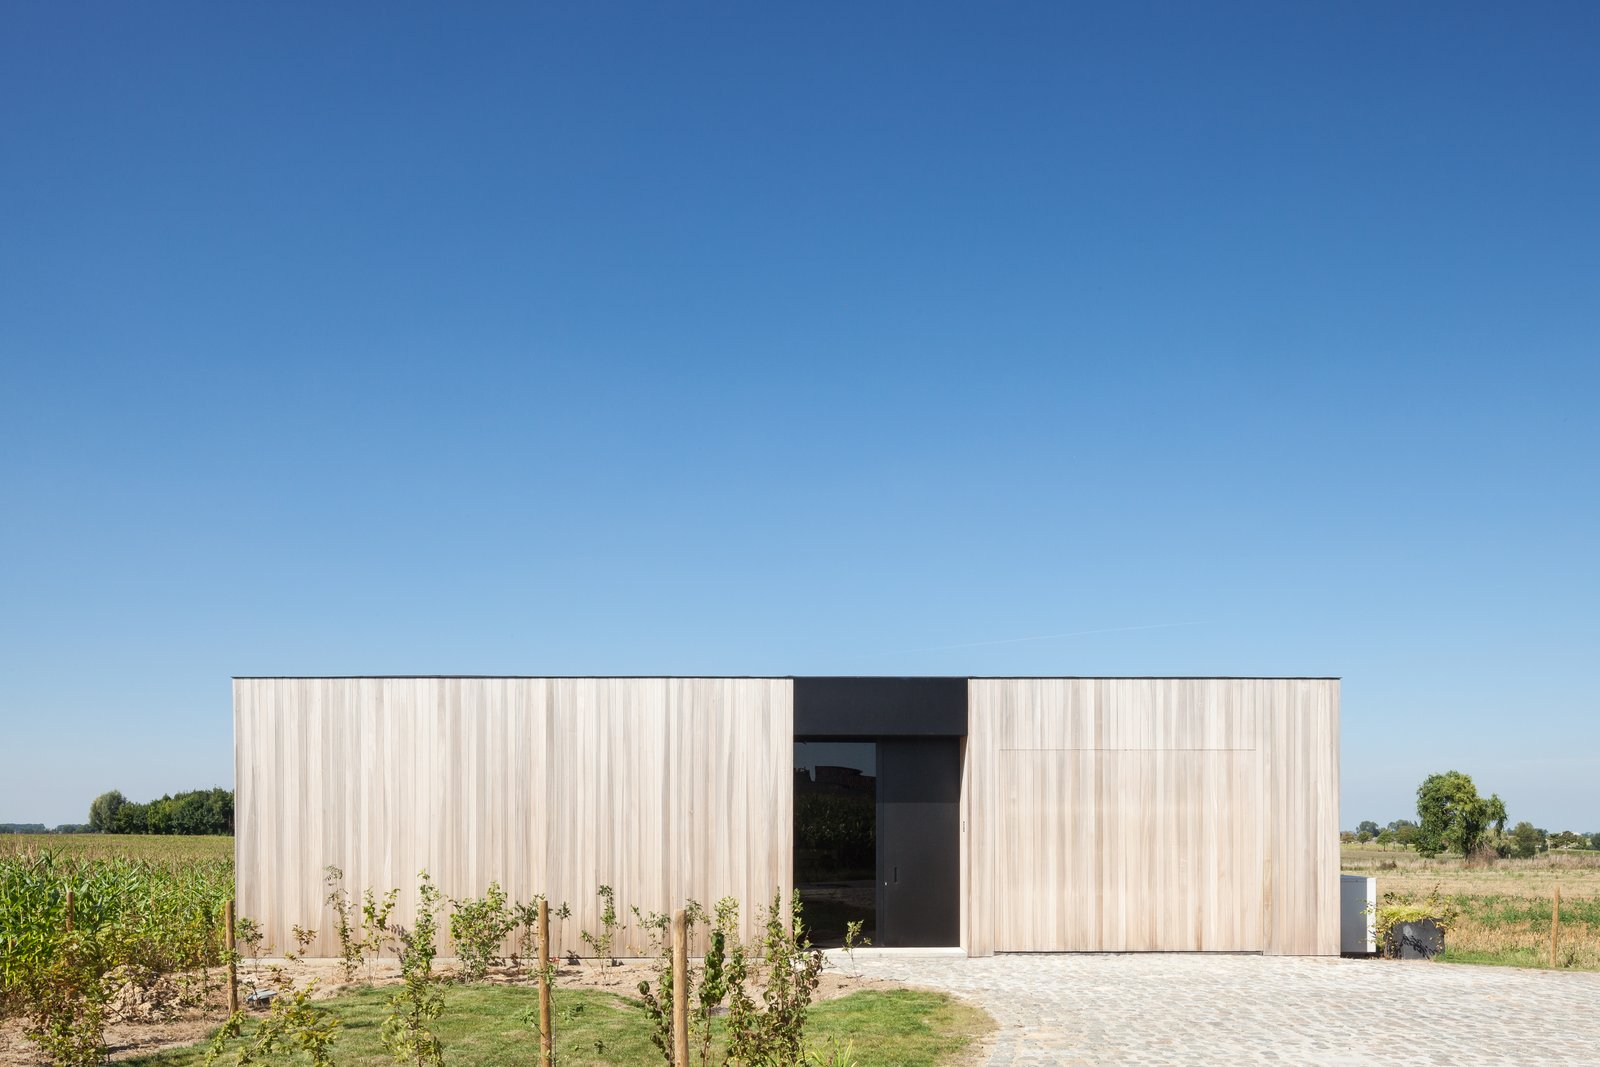 Photo 3 of 14 in Defying traditionalism: concrete bungalow inserted in a rural Belgian landscape